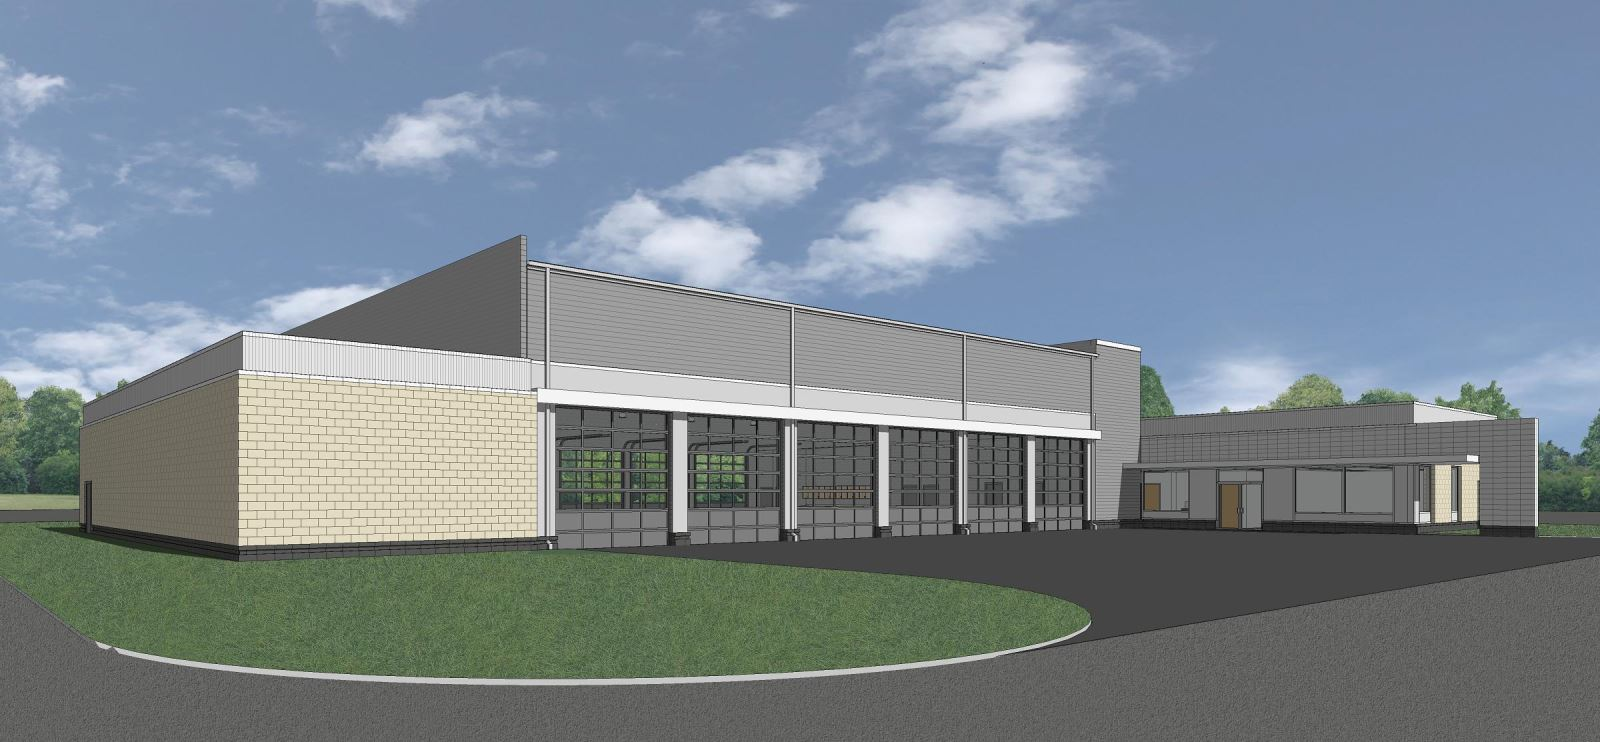 MASP & PSTA Project 3: Public Safety Training Academy - Exterior View Of Apparatus Building